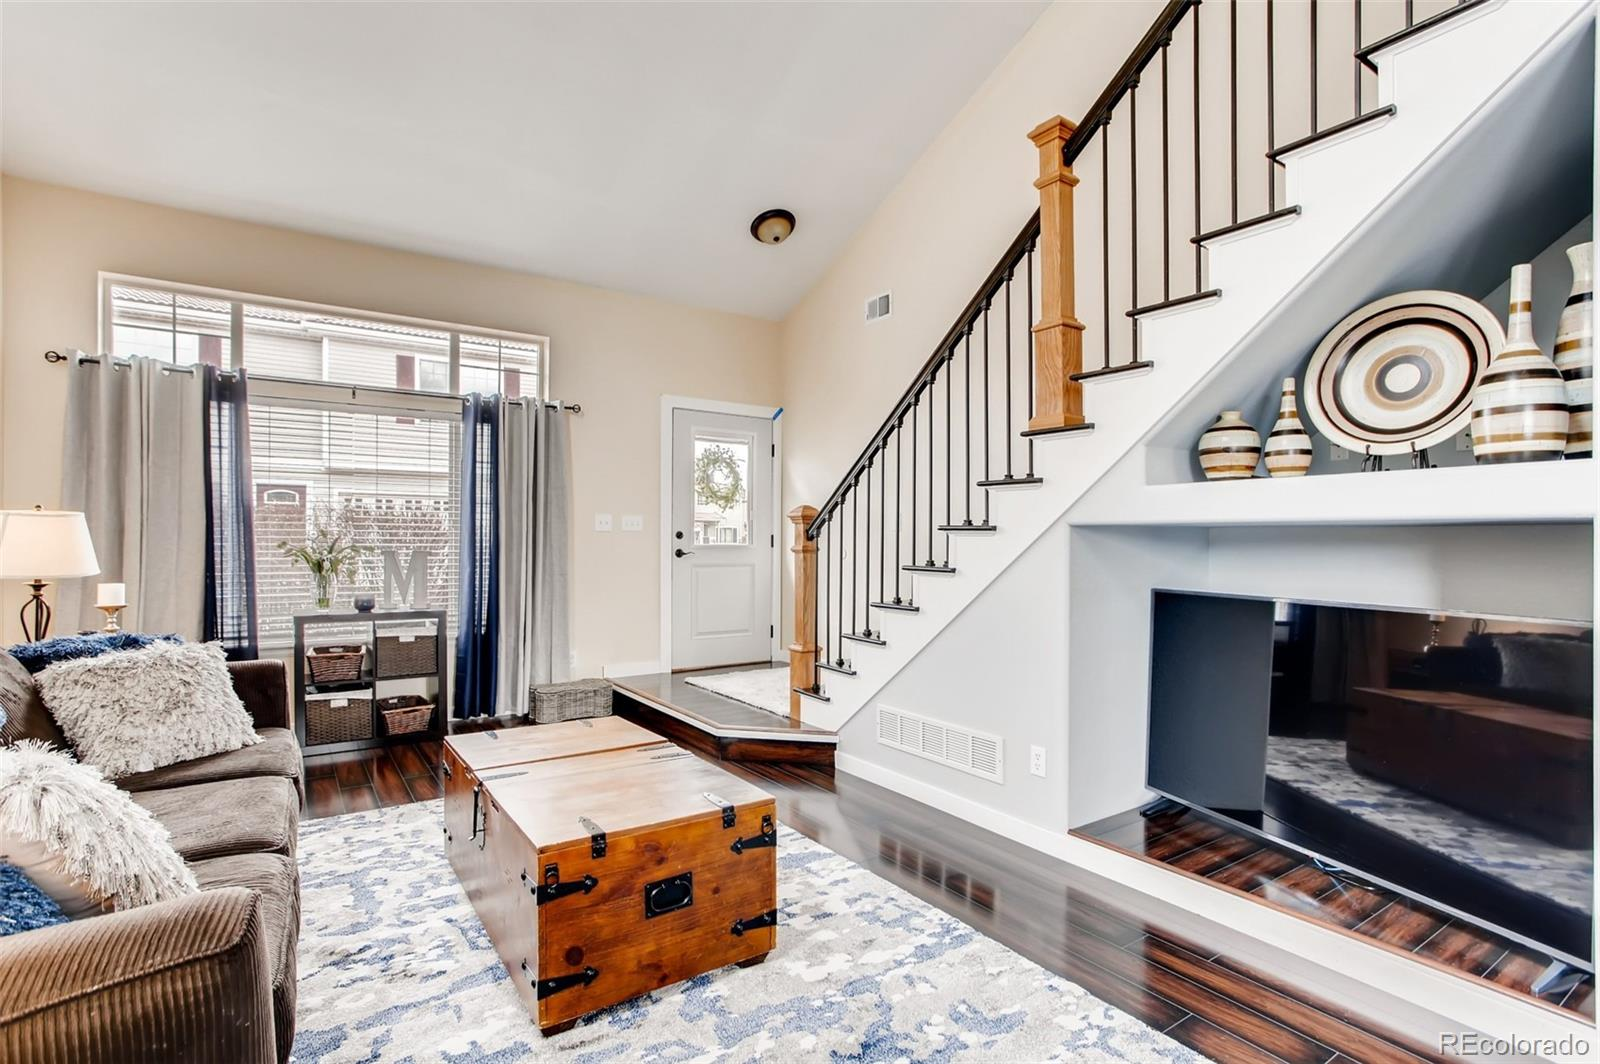 MLS# 3131128 - 4 - 20000 Mitchell Place #64, Denver, CO 80249